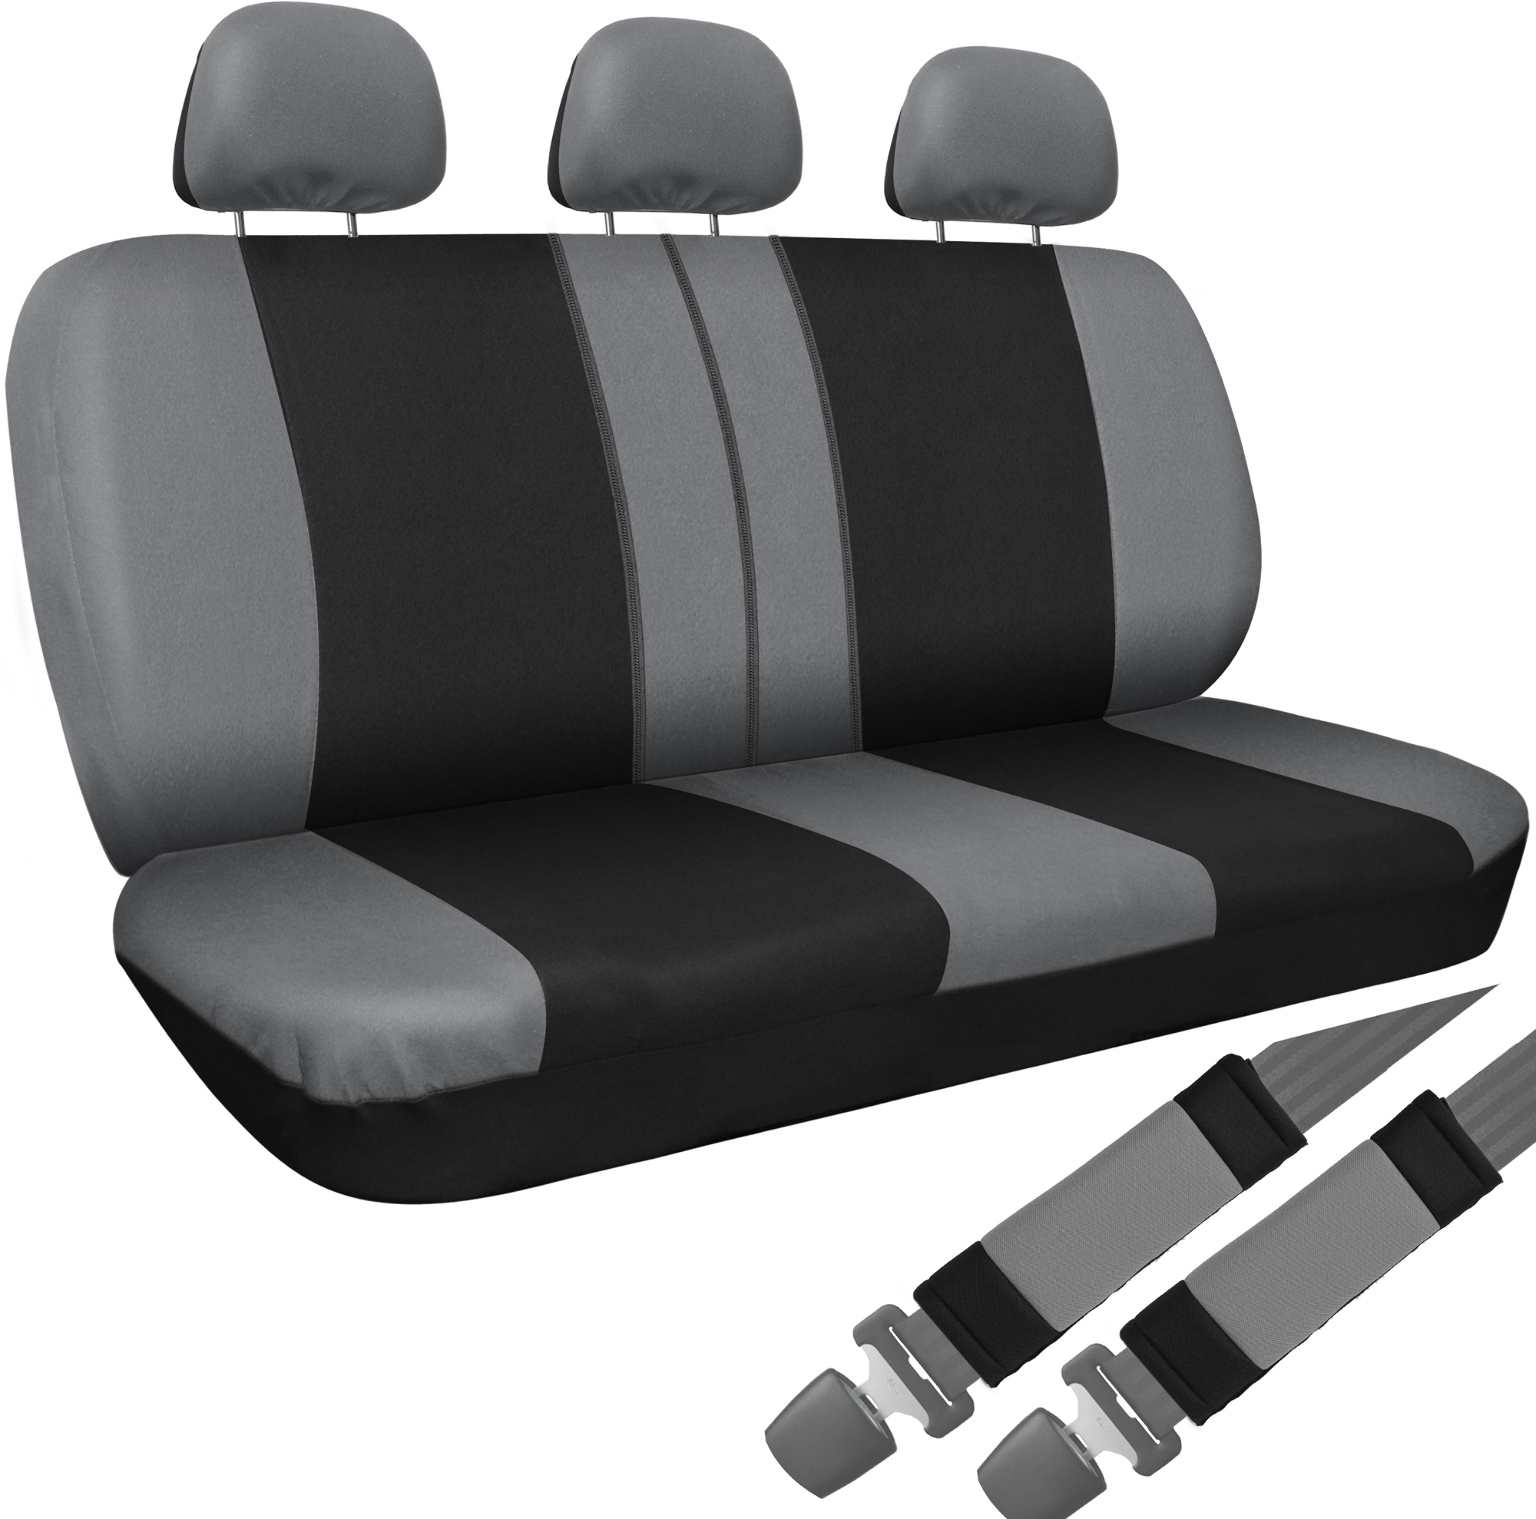 Wholesale Car SUV Van Truck Seat Cover Black 8pc Set Bench